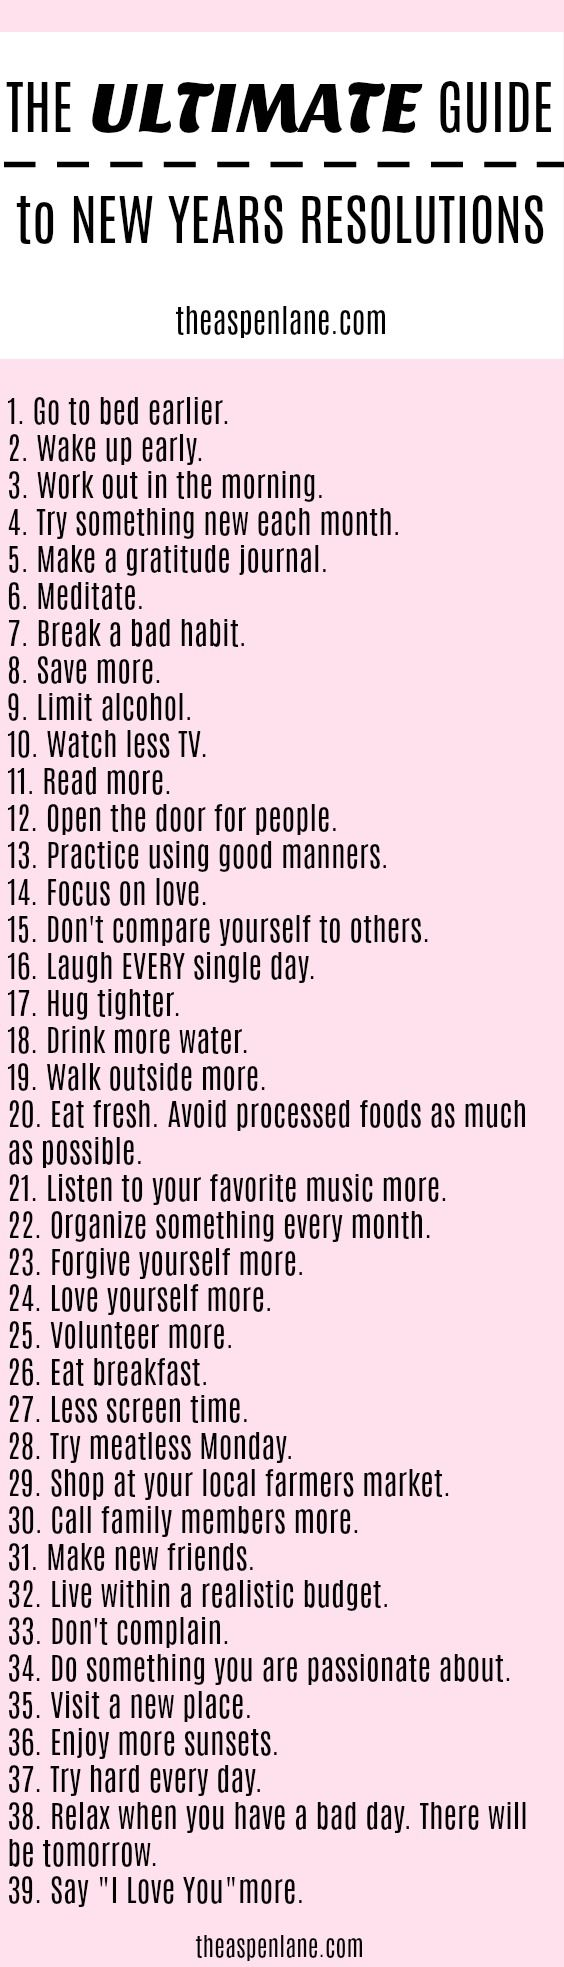 The Ultimate Guide of 2018 New Years Resolutions. 2018 will bee here soon and we have compiled this list of ideas.  newyearsresolution